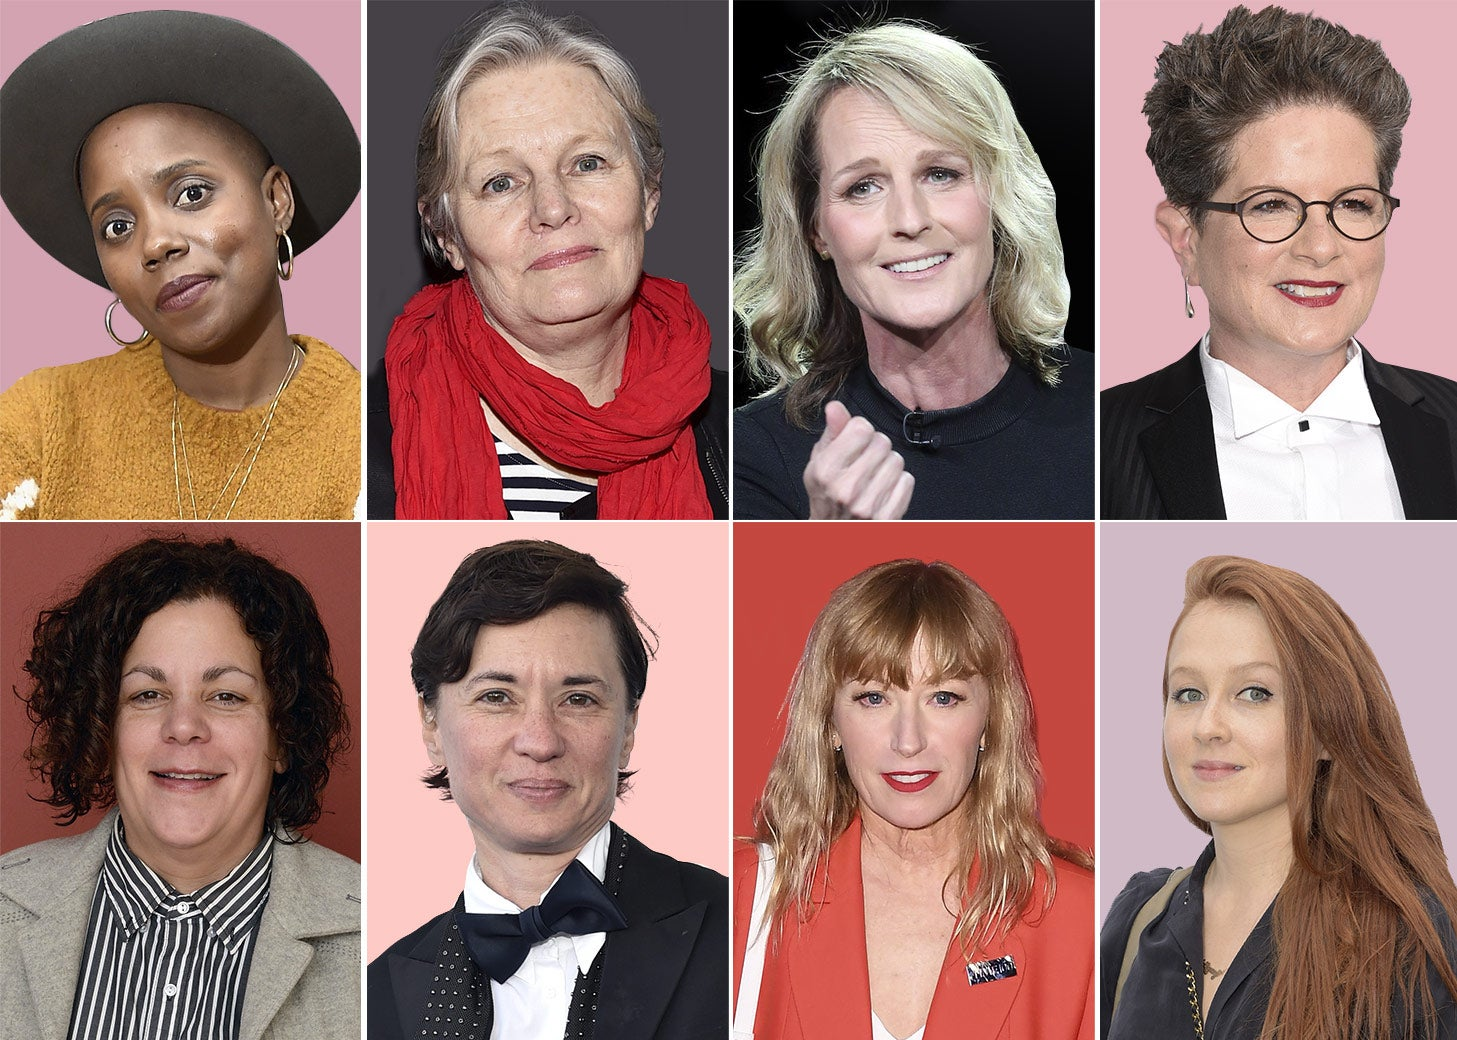 Some of the female and gender-fluid filmmakers whose movies Vachon has produced. Row 1: Janicza Bravo, Mary Harron, Helen Hunt, and Phyllis Nagy. Row 2: Rose Troche, Kimberly Peirce, Cindy Sherman, and Elizabeth Wood.